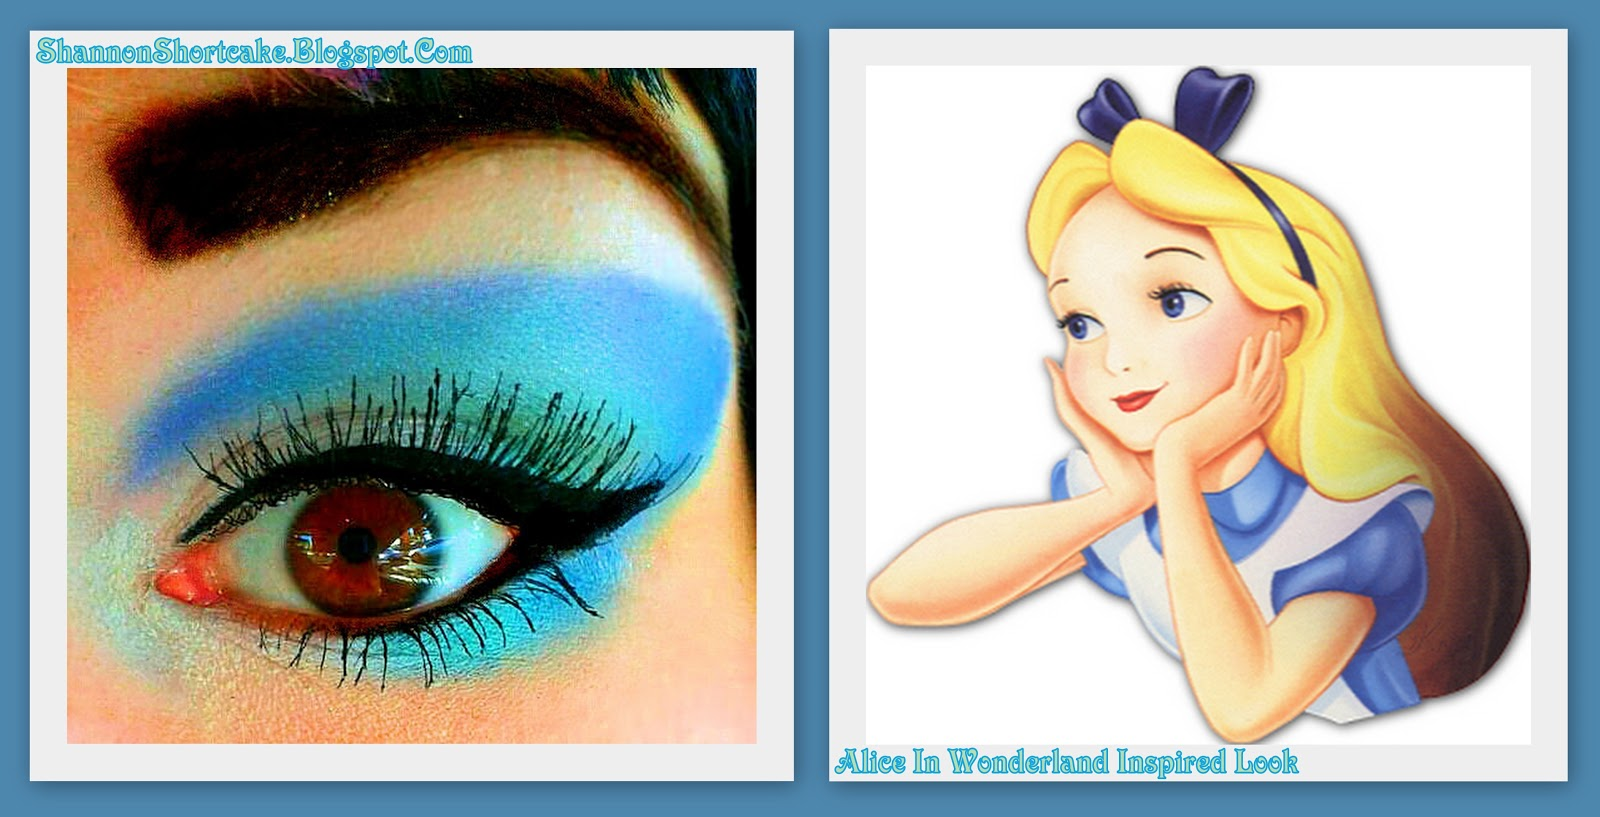 shannon shortcake (makeup addict): alice in wonderland inspired